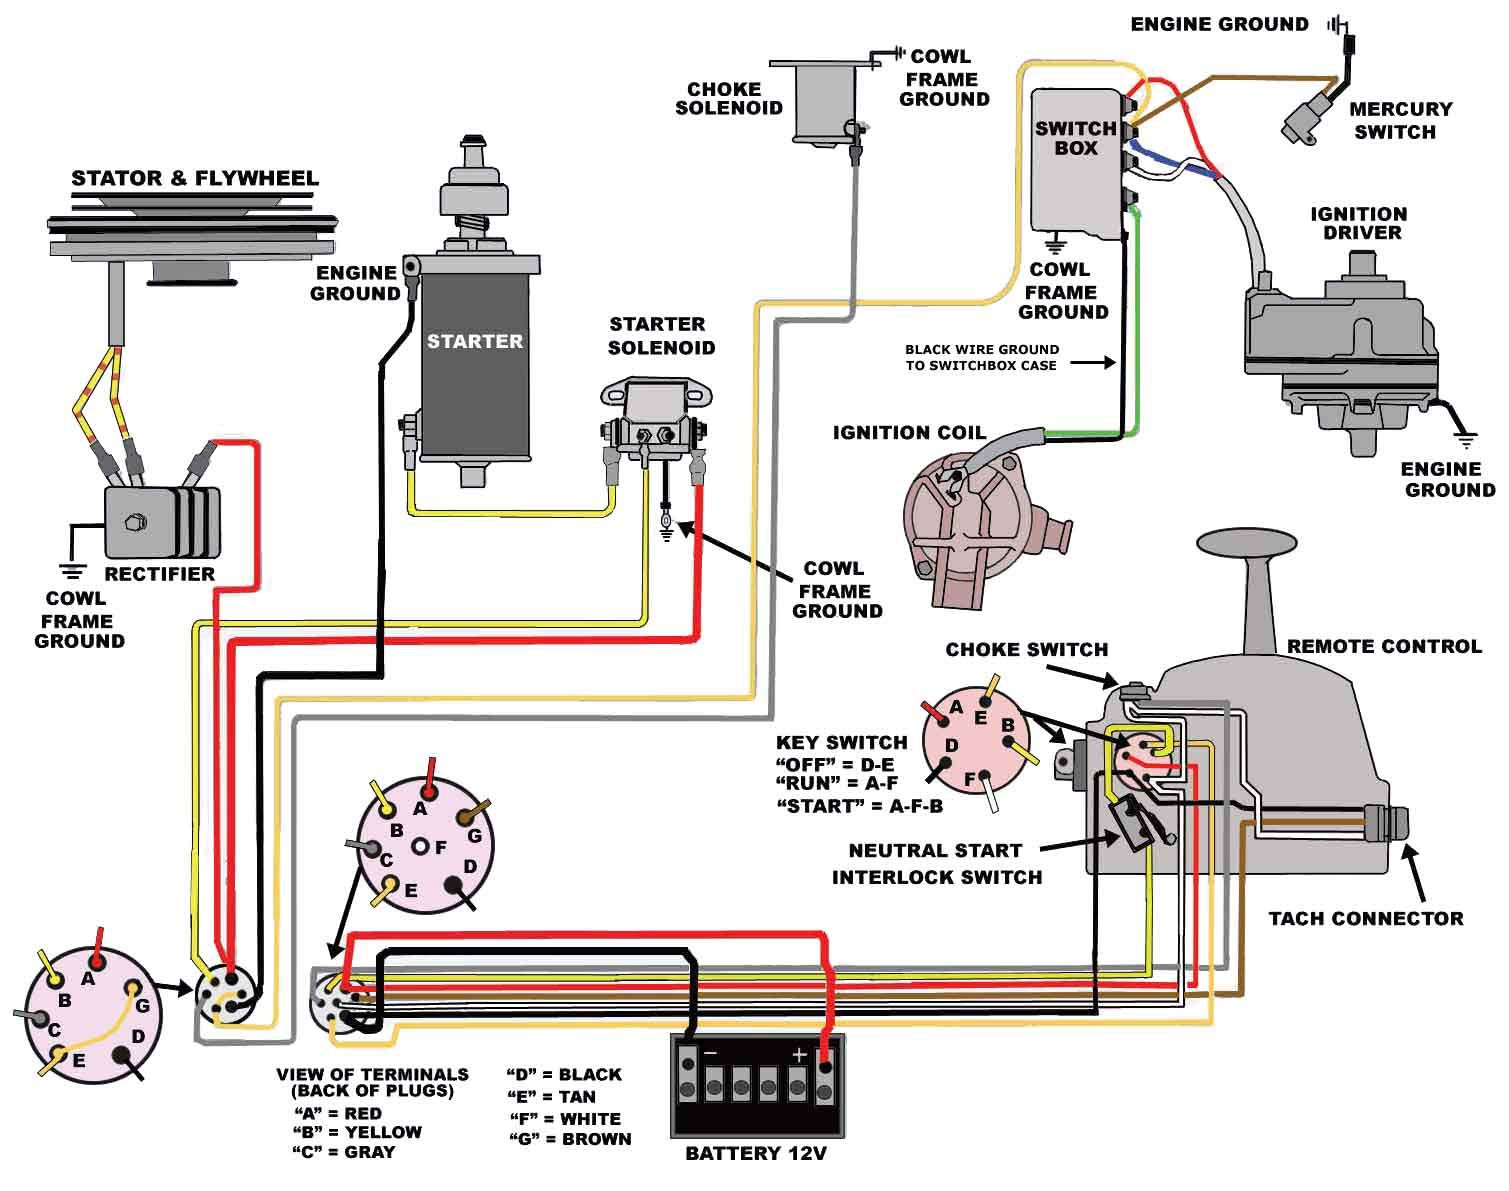 Boat Ignition Wiring Diagram - Wiring Diagram Table on